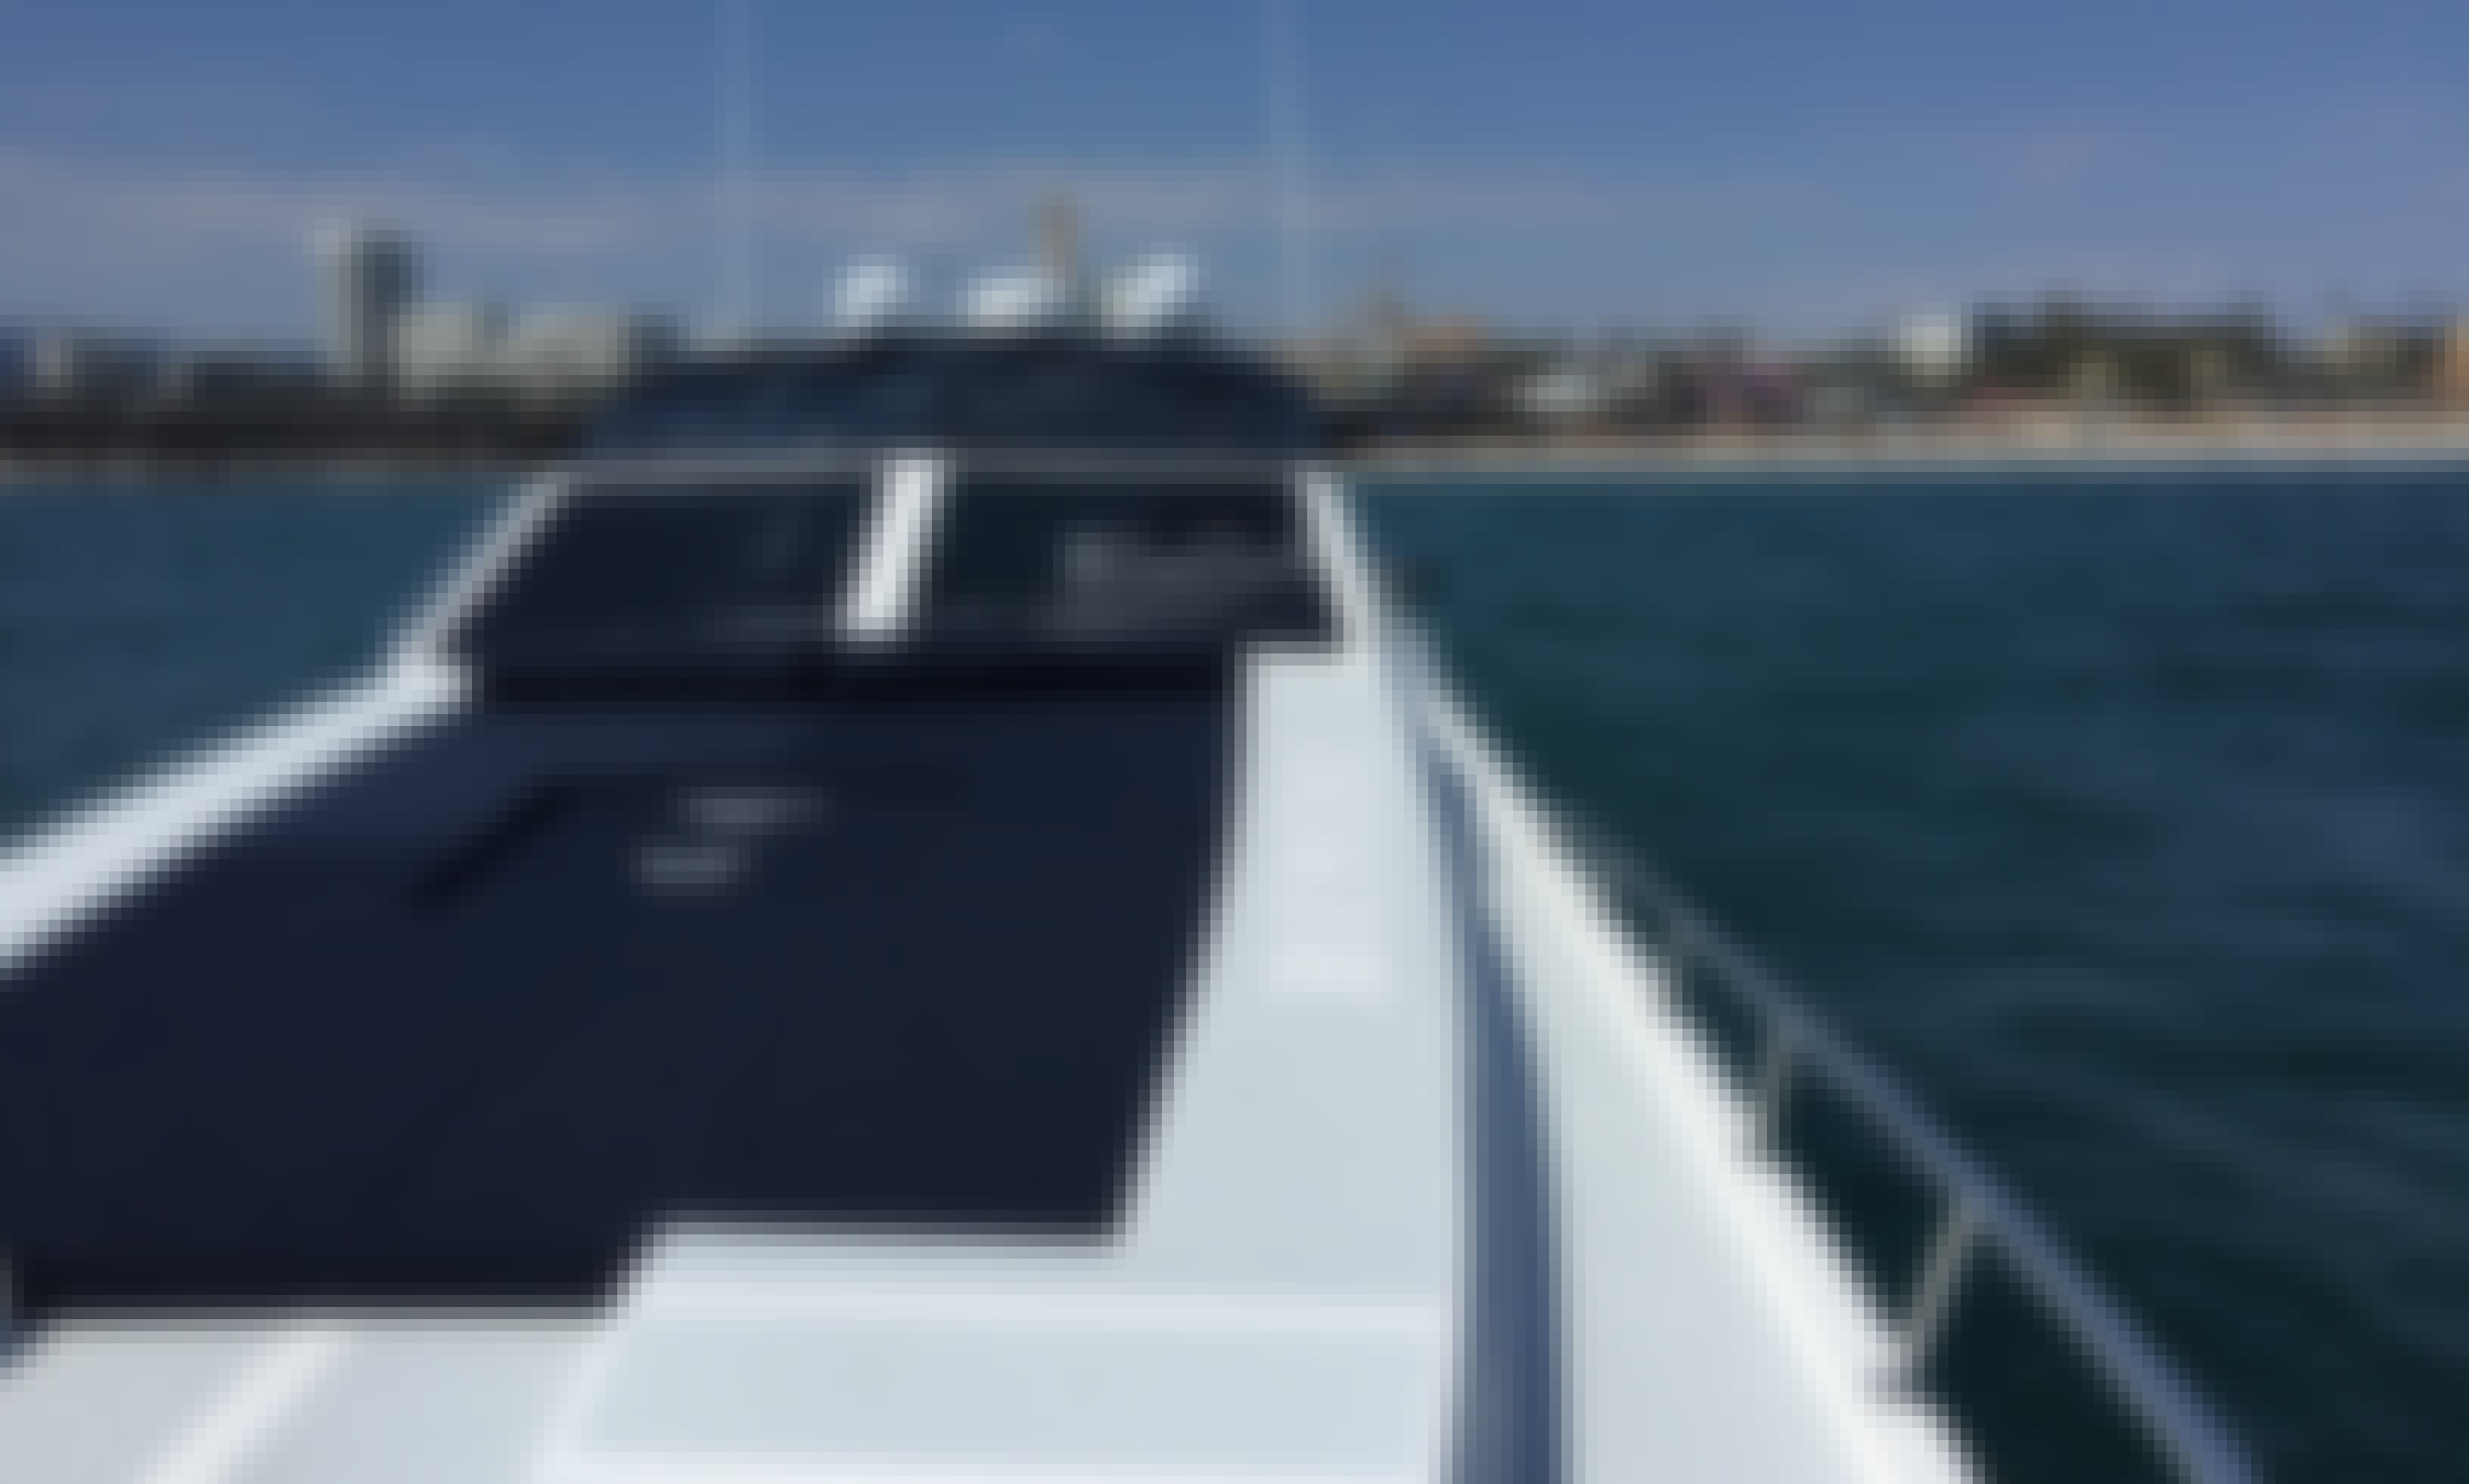 60' Luxury Yacht in Marina del Rey - Let's get out and enjoy the water!